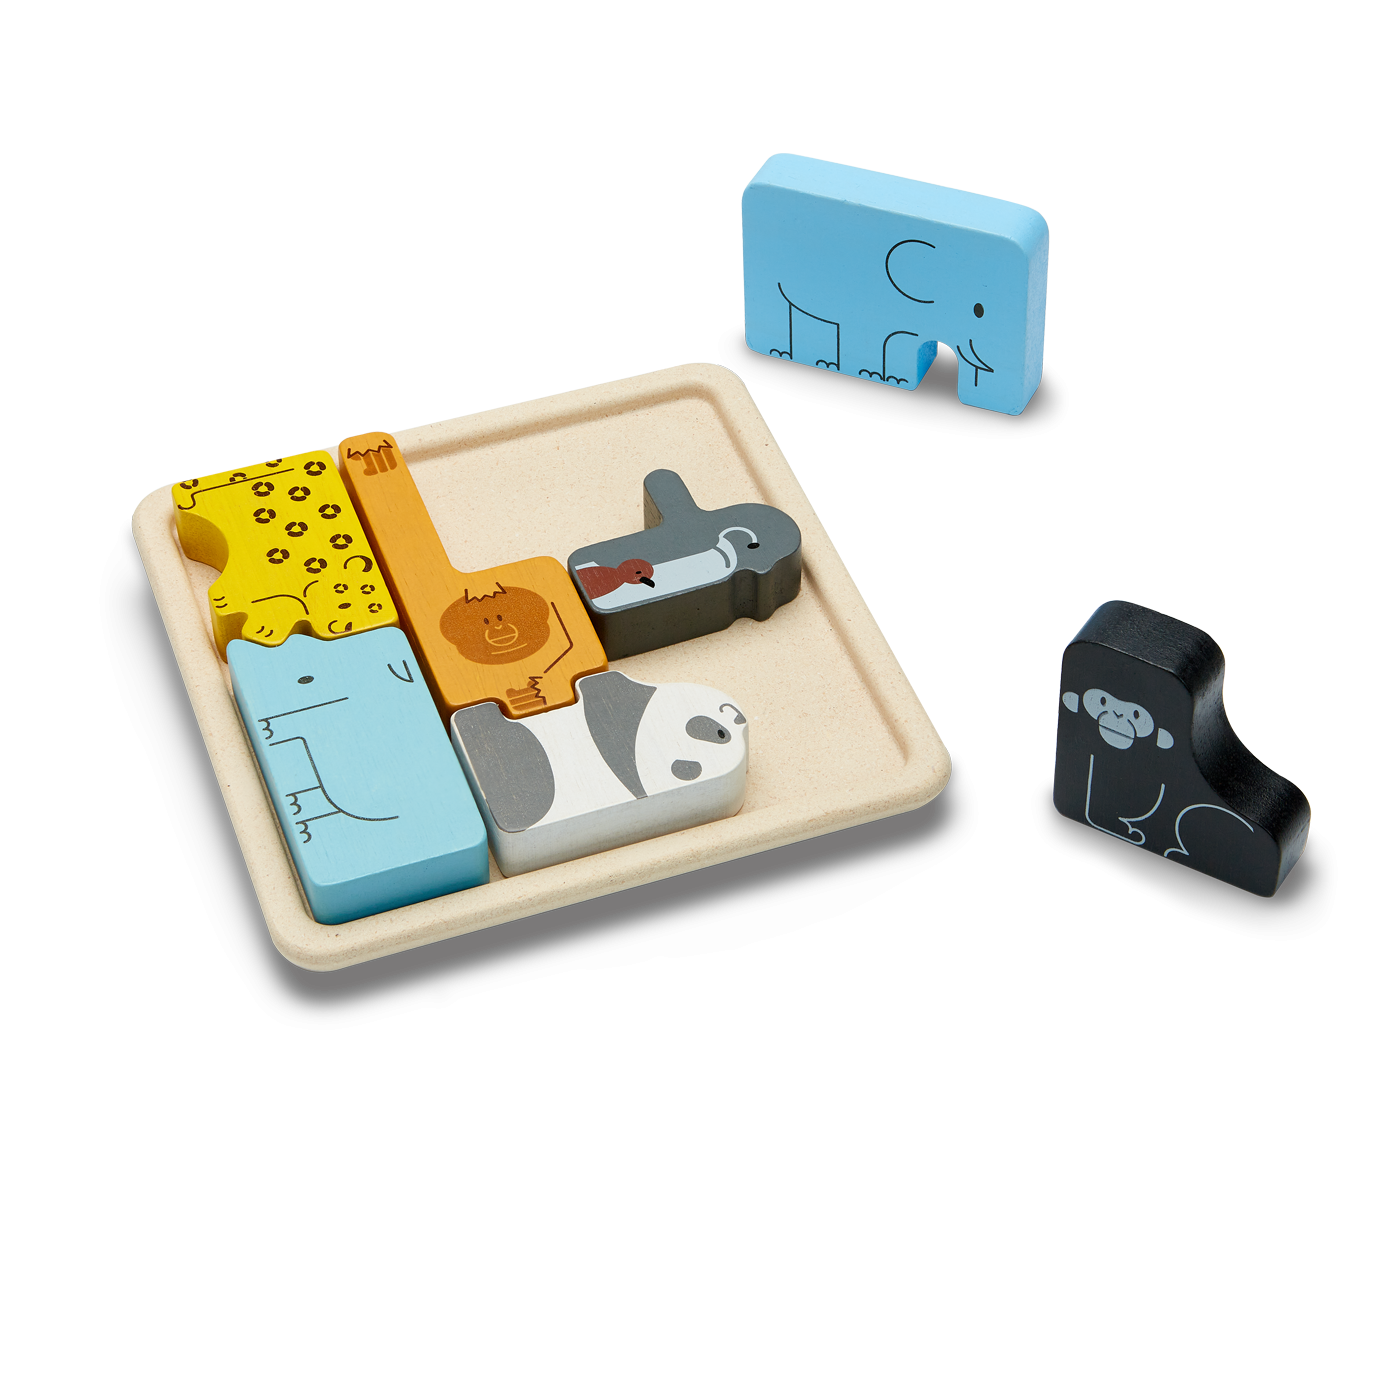 4644_PlanToys_Animal_Puzzle_Game_Game_and_Puzzles_2yrs_Language_and_Communications_Coordination_Visual_Concentration_Logical_Problem_Solving_Wooden_toys_Education_toys_Safety_Toys_Non-toxic_0.png